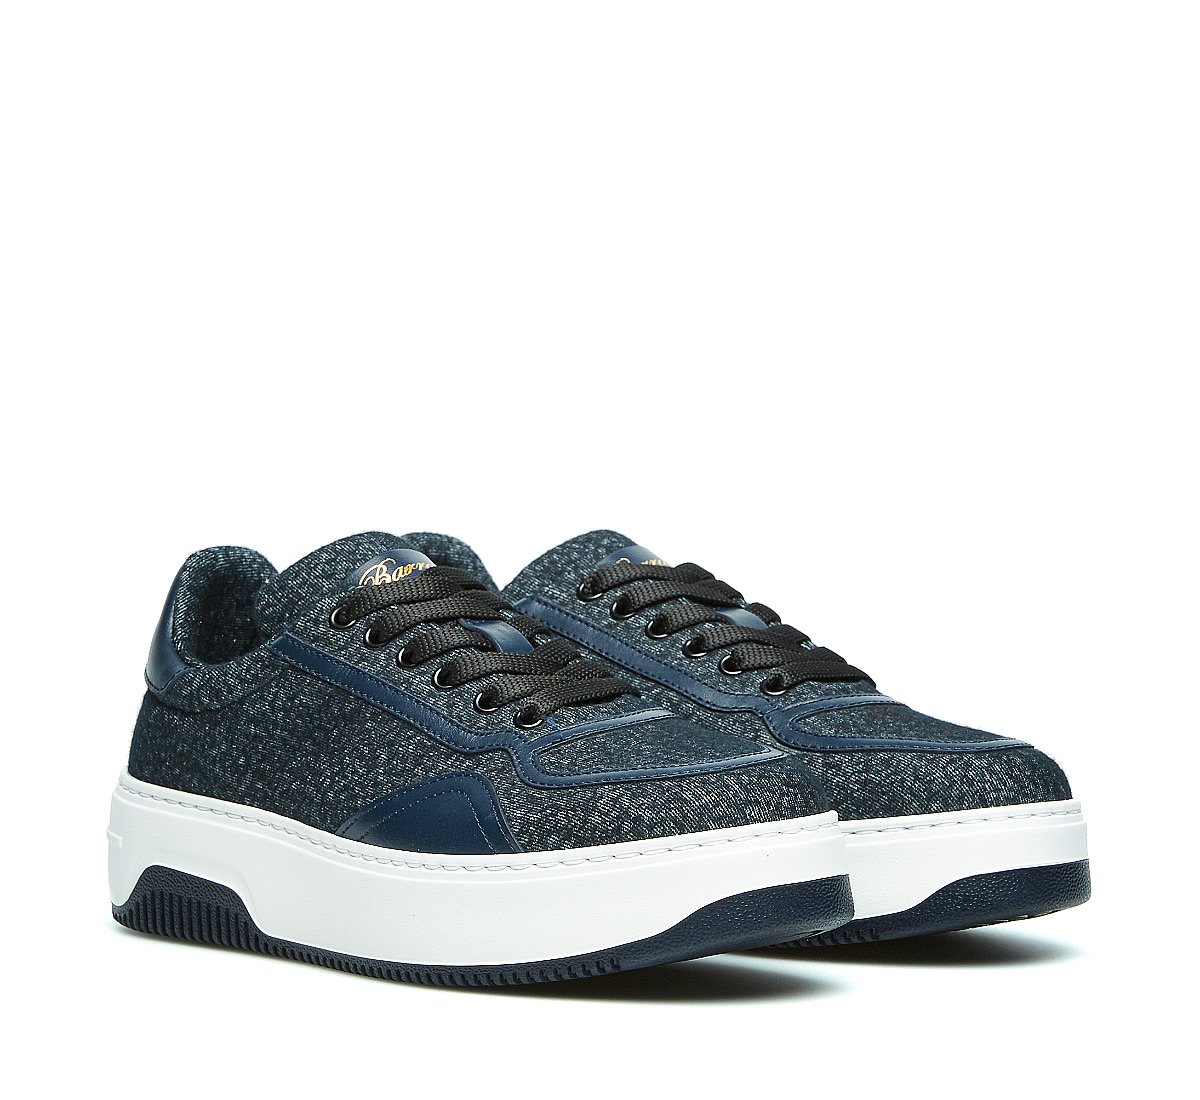 New Breathable/dry sneaker by Reda Active Merino Wool